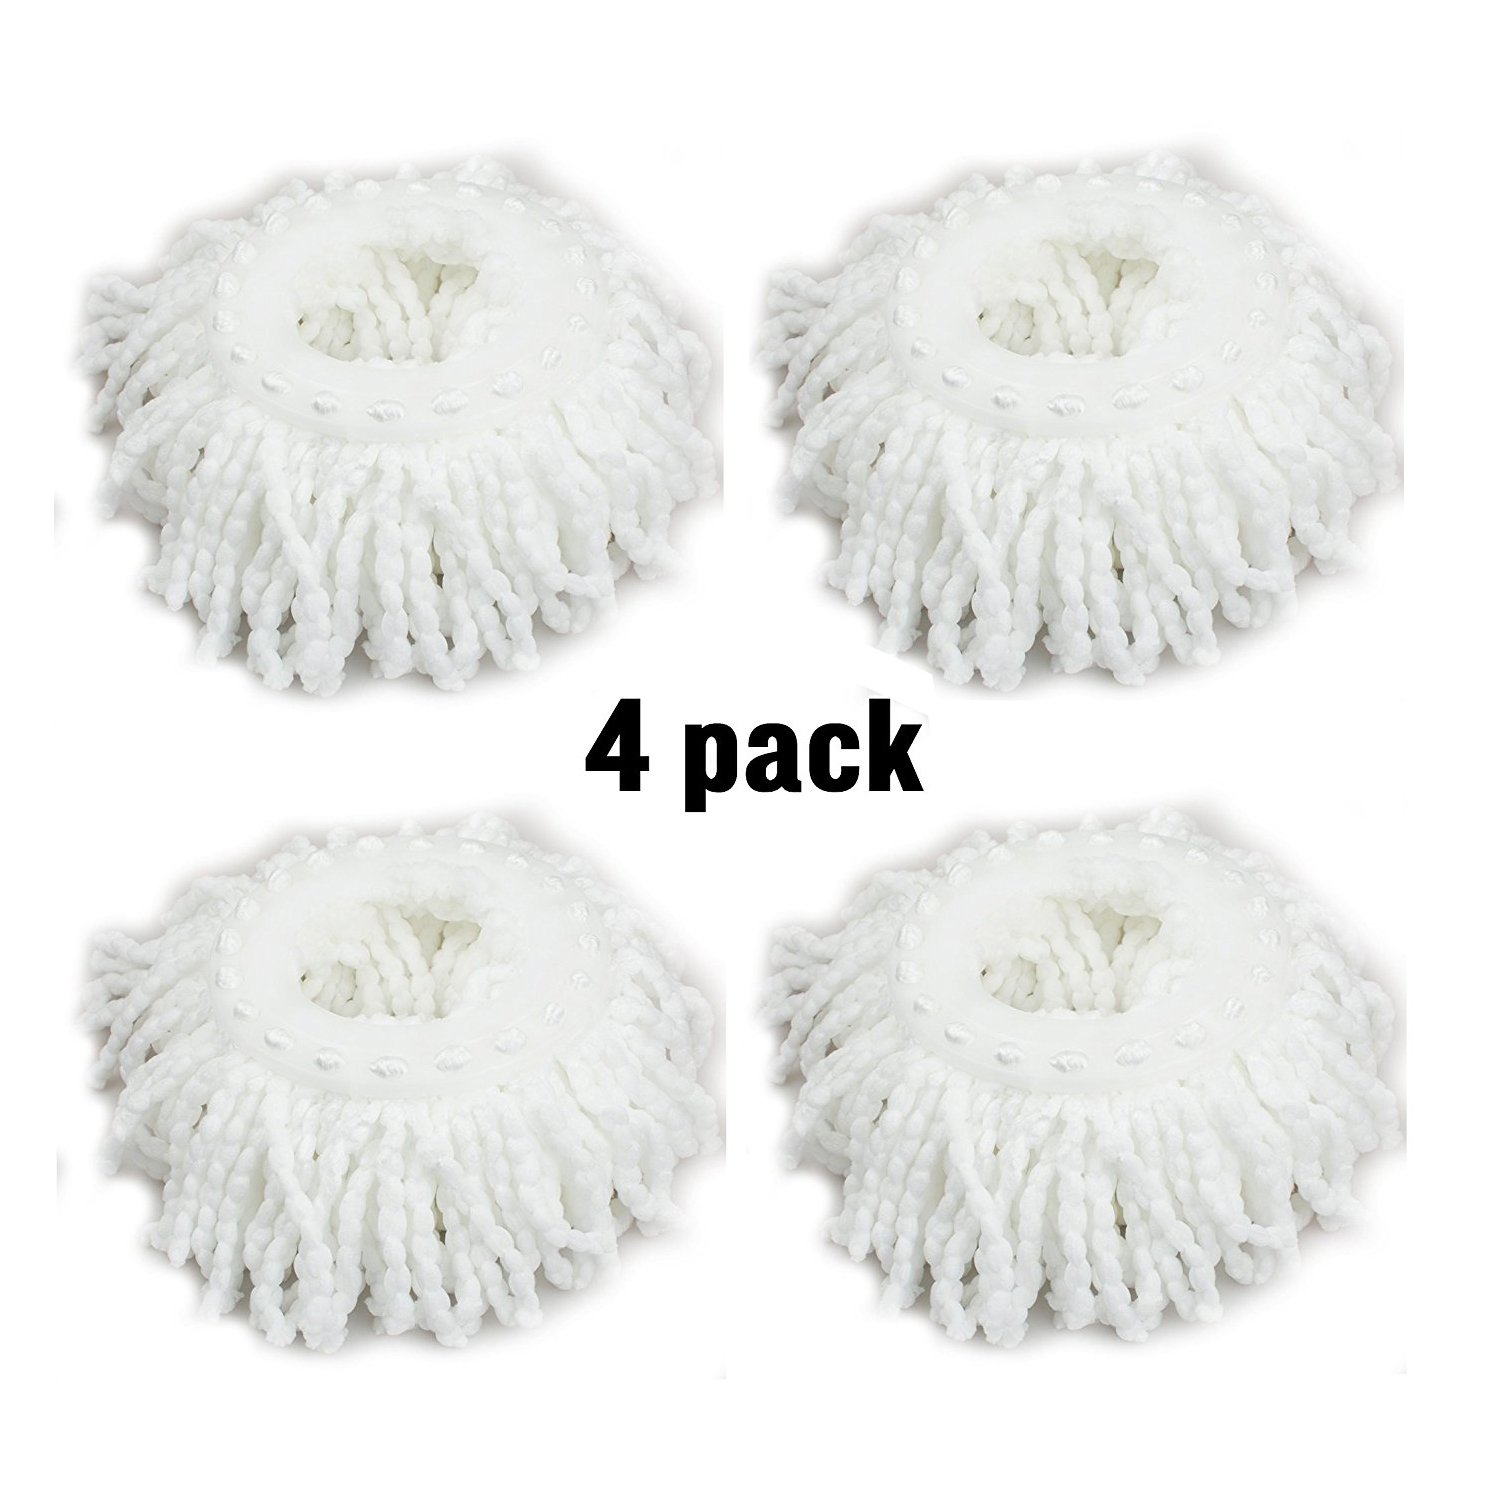 Universal Replacement Mop Head, GFEU 360°Spin Magic Microfiber Round Mop Head Refill Fit Rotating Mop System- Pack of 4, Ultra Absorbent & Machine Washable